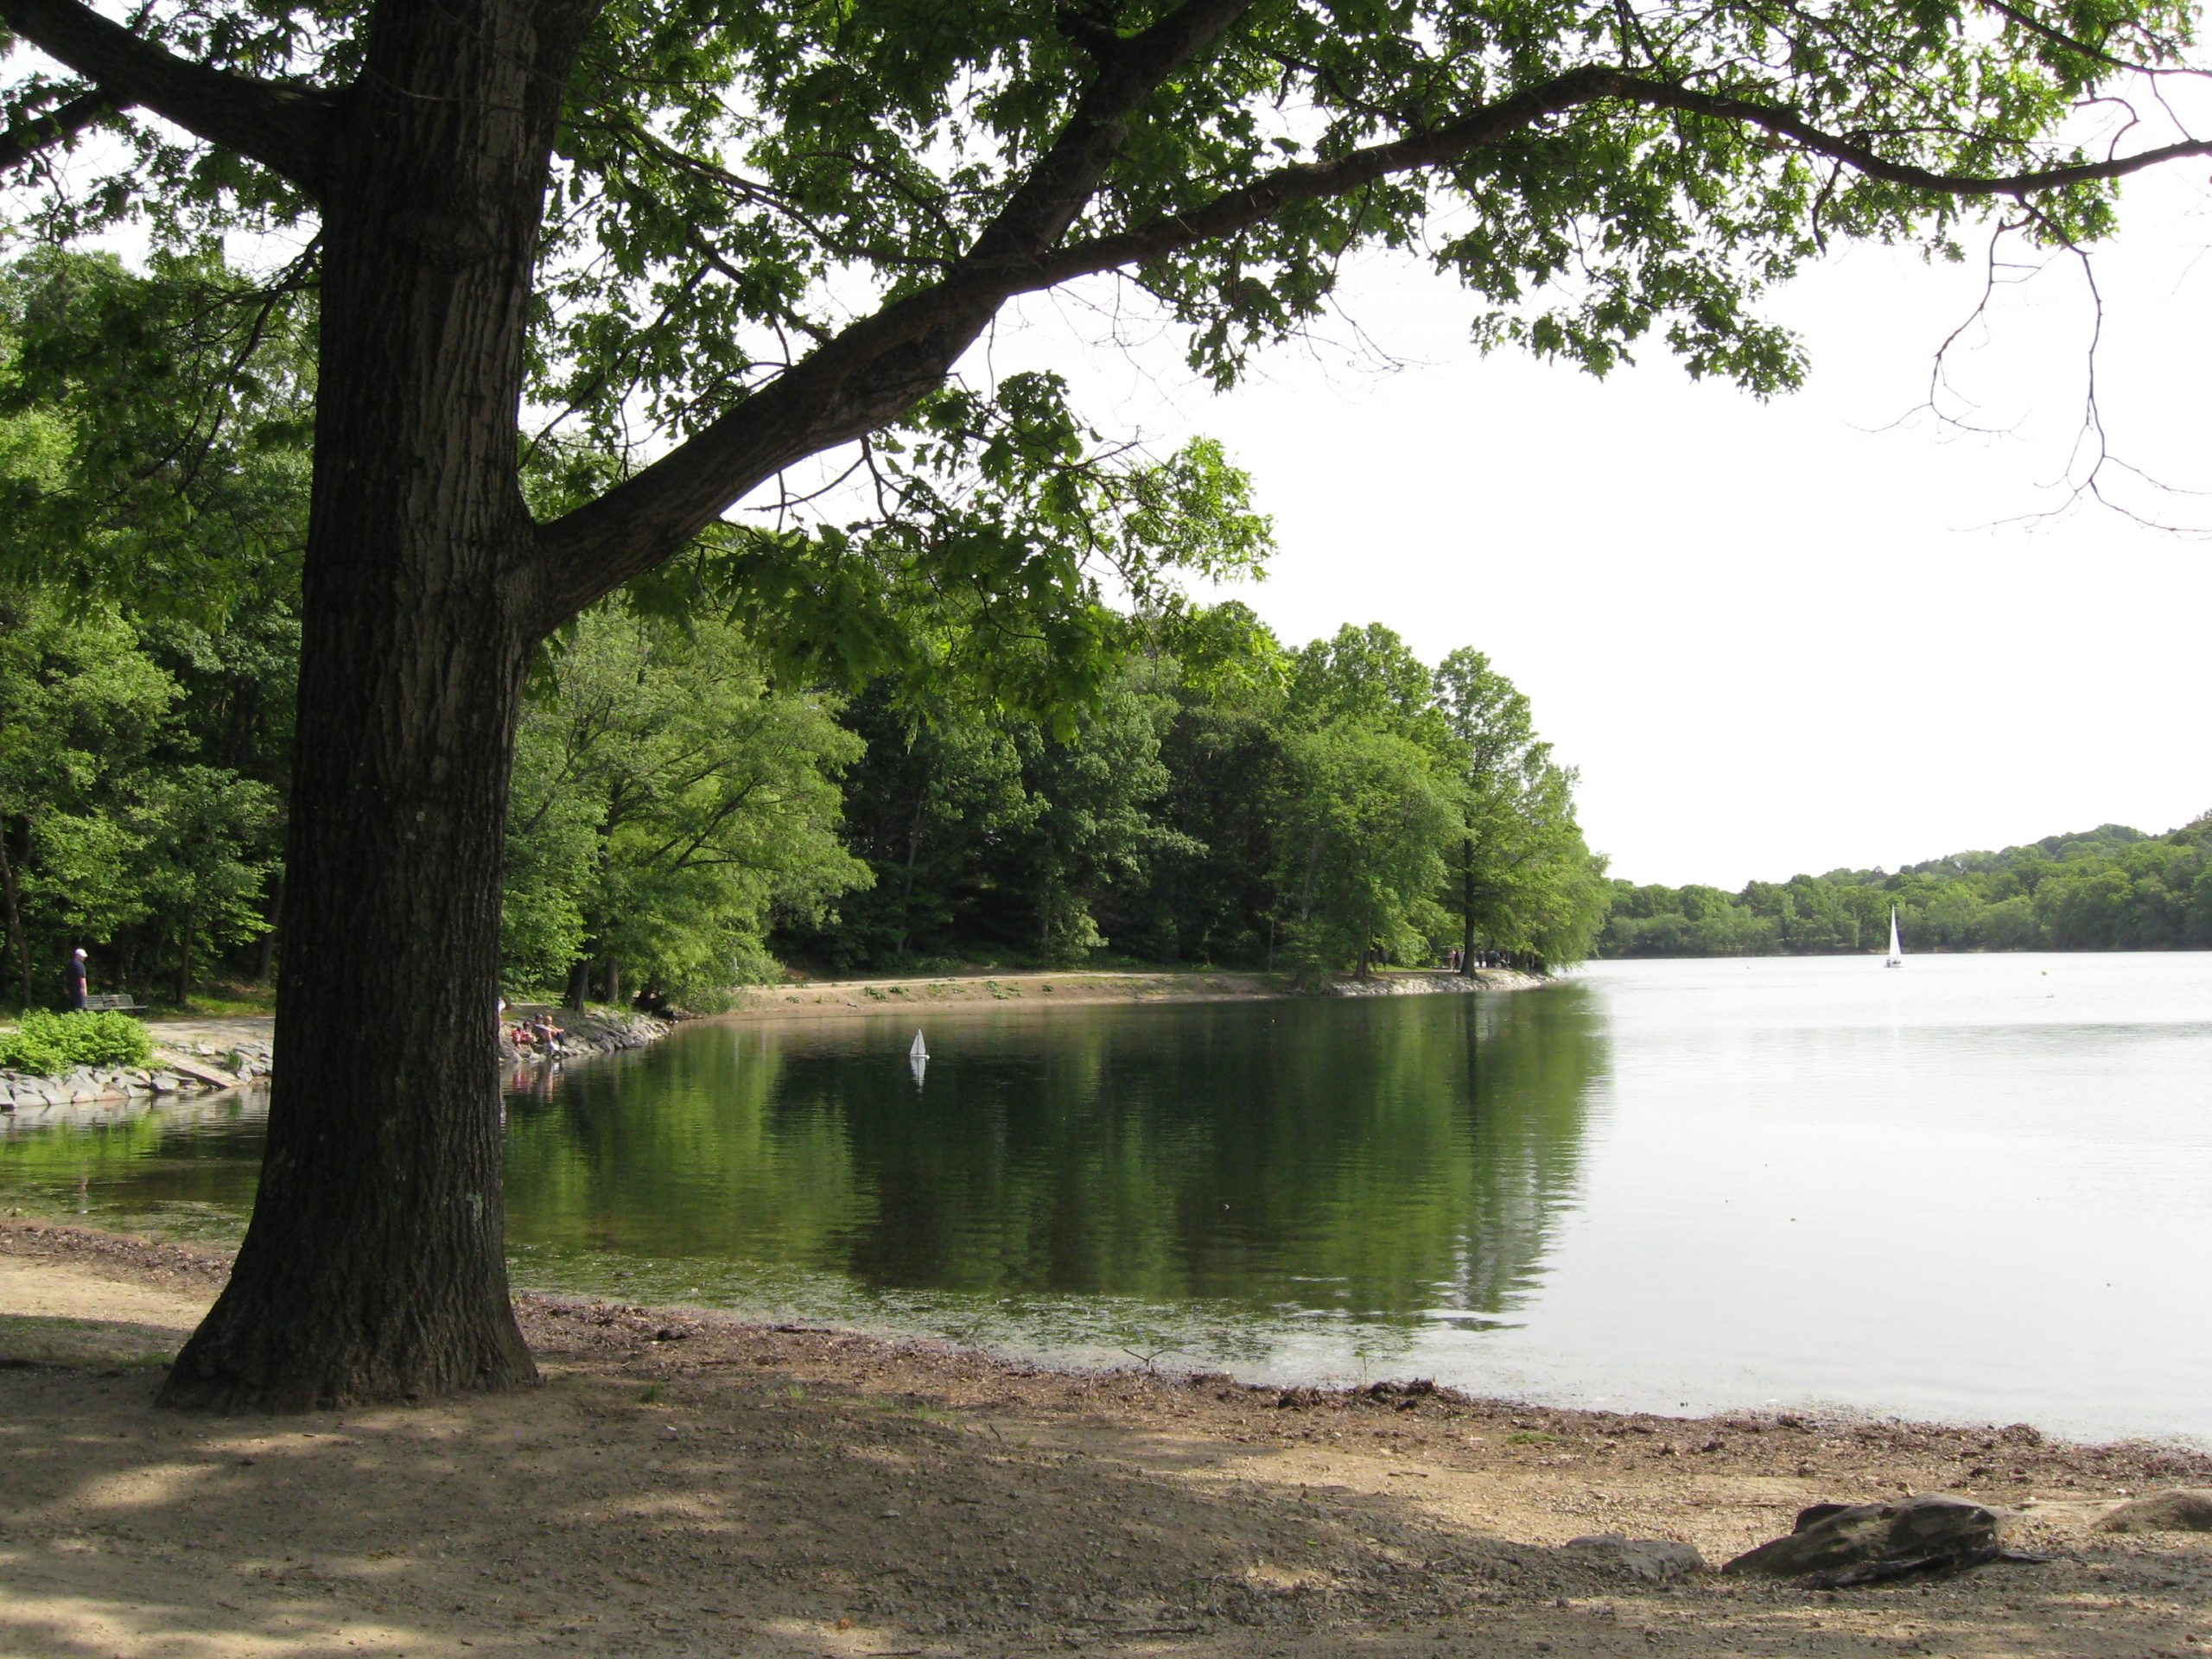 Image of Jamaica Pond. Photo credit: Rene Beignet